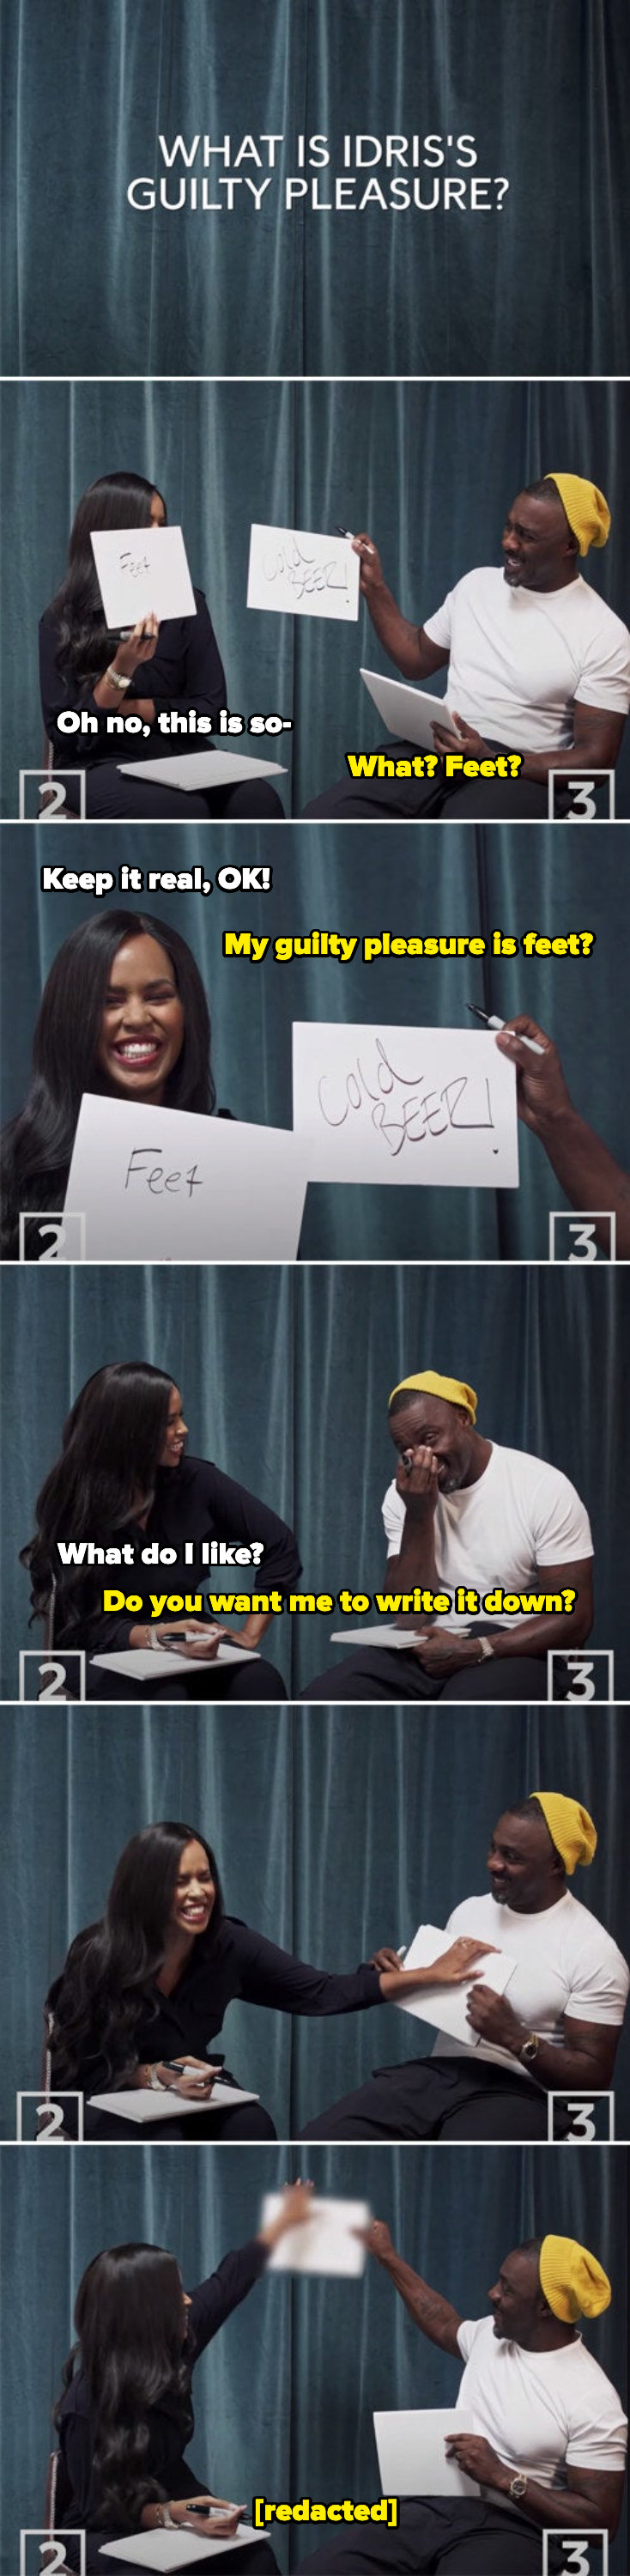 Idris's wife saying his guilty pleasure is feet, Idris looking confused and embarrassed, her asking what she likes, them laughing, and the answer being blurred out